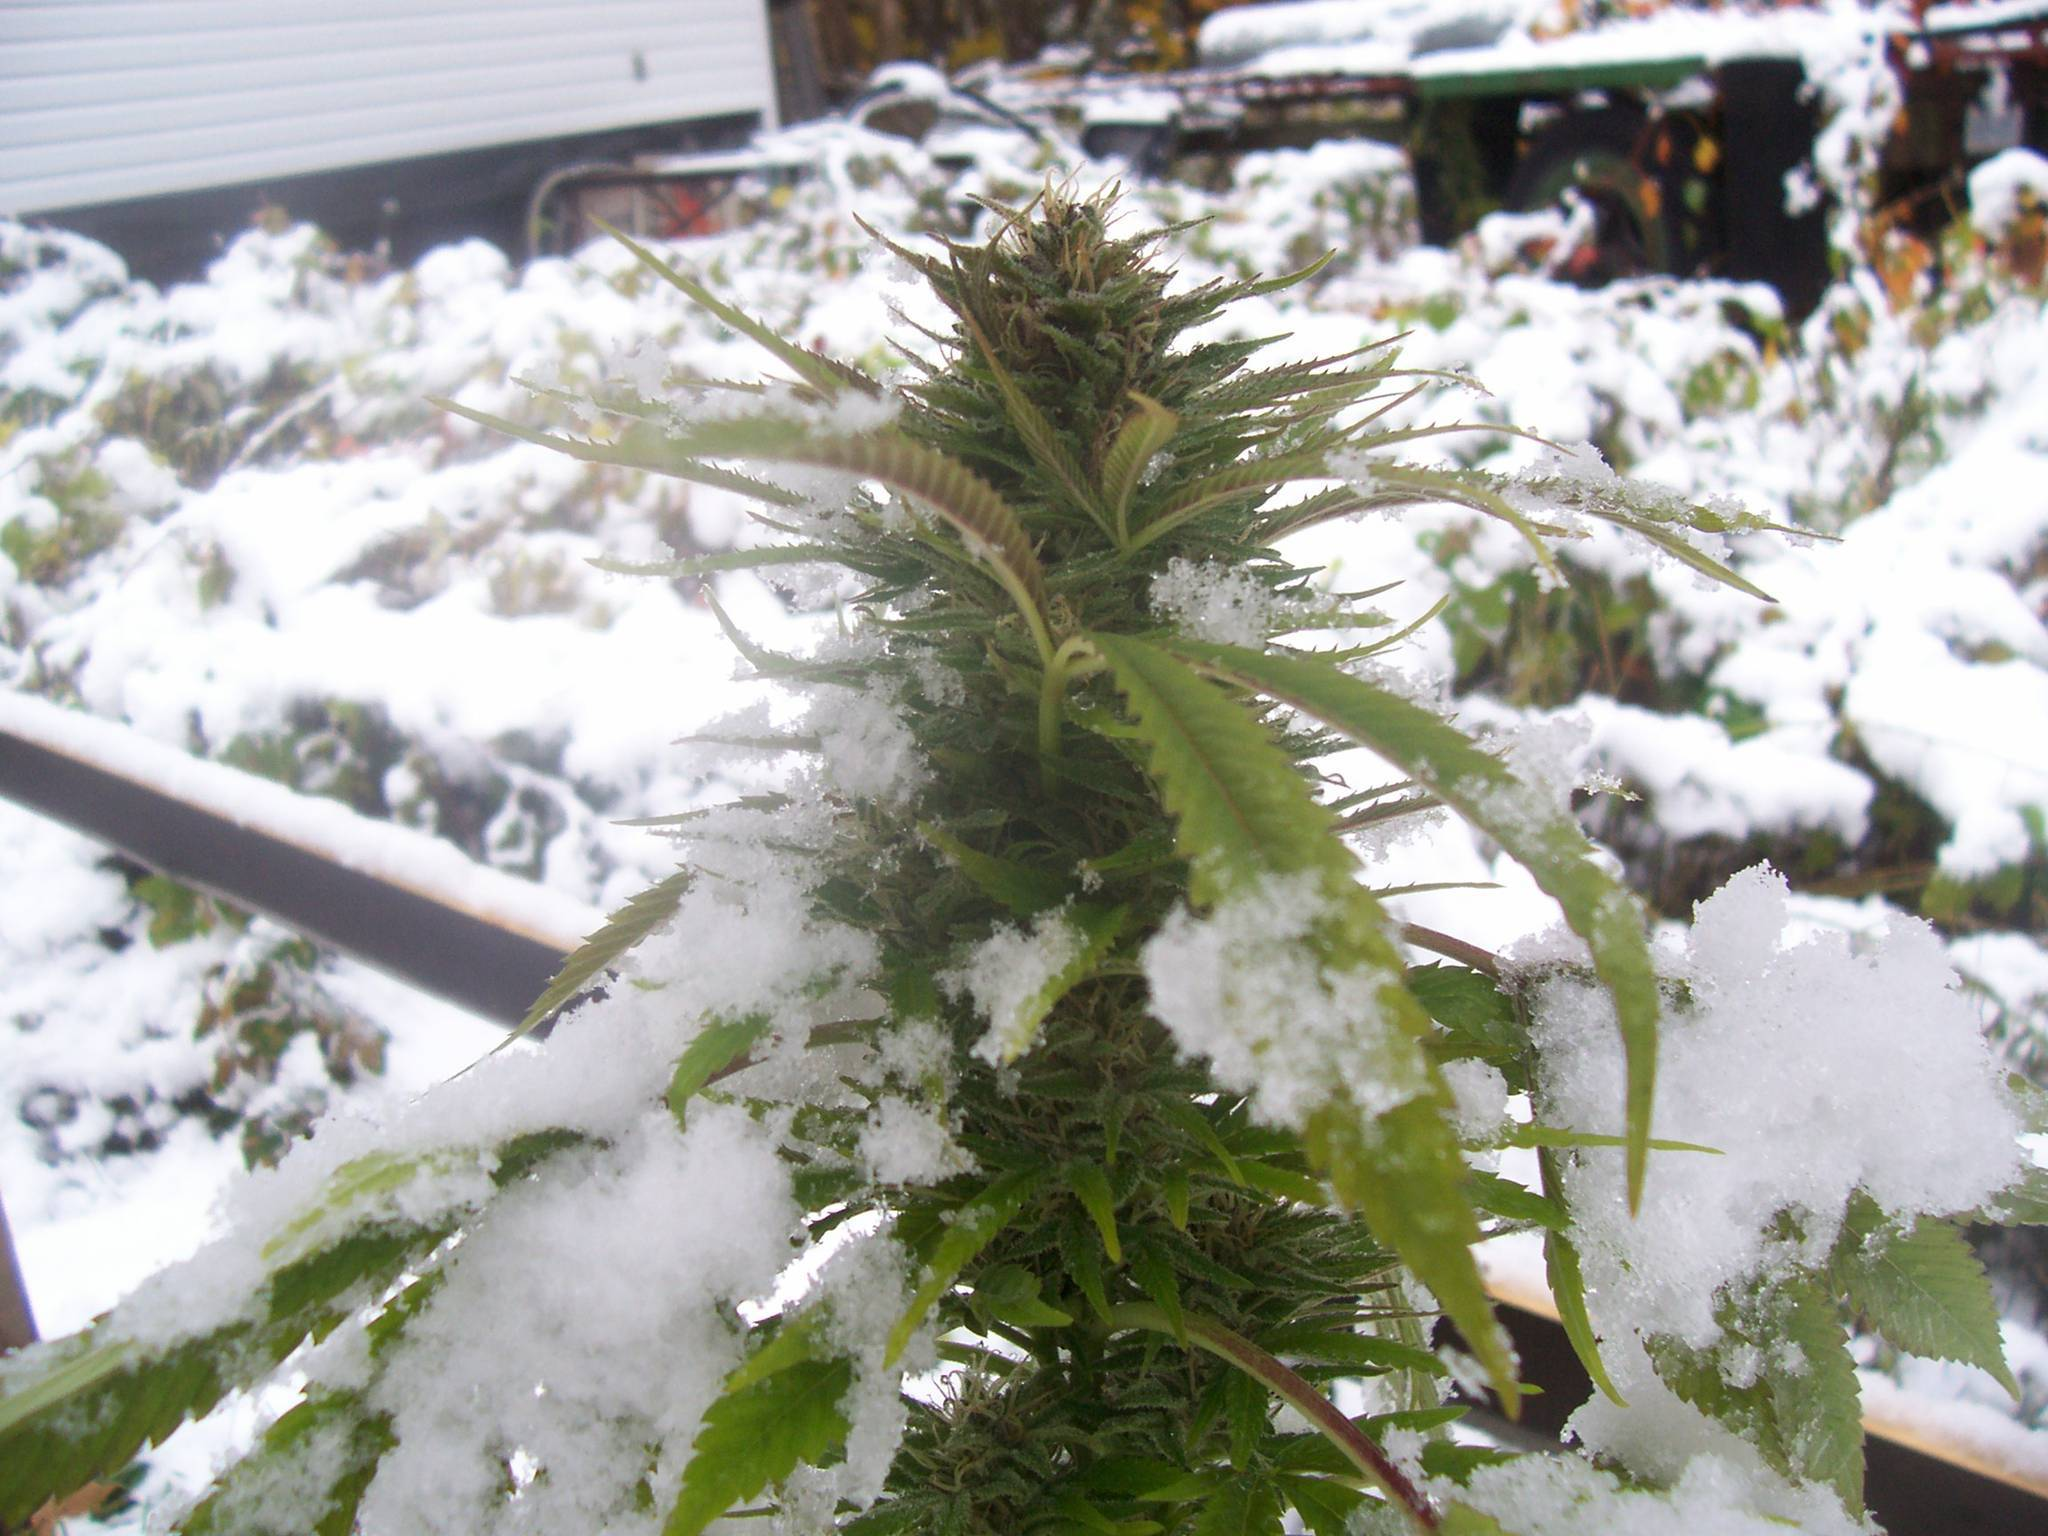 Marijuana fighting against the winter